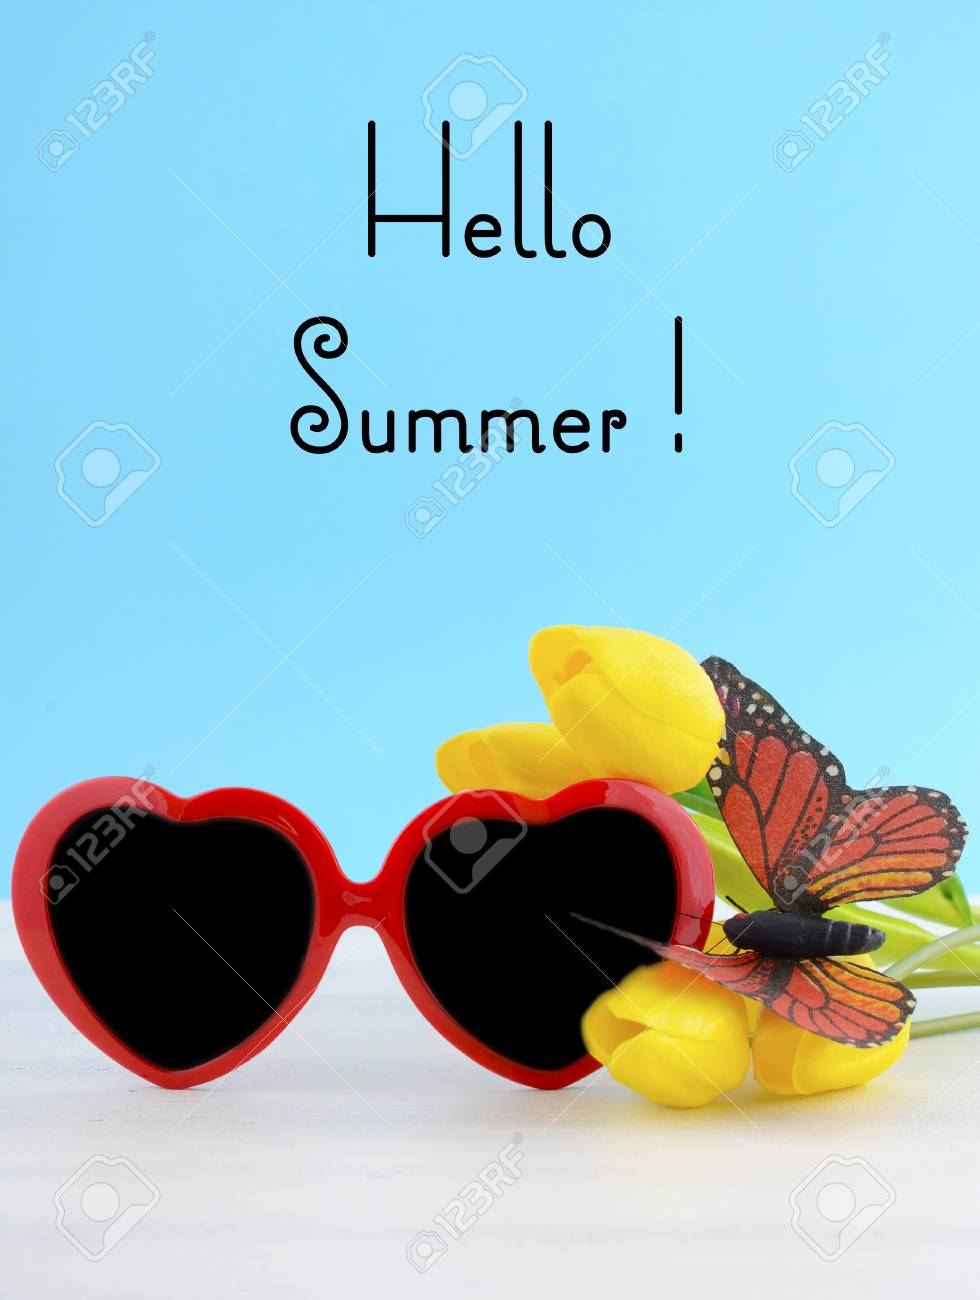 4a55cb4492 Stock Photo - Summer Is Here concept with red heart shape sunglasses with  butterfly on yellow flowers on white wood table and sky blue background.